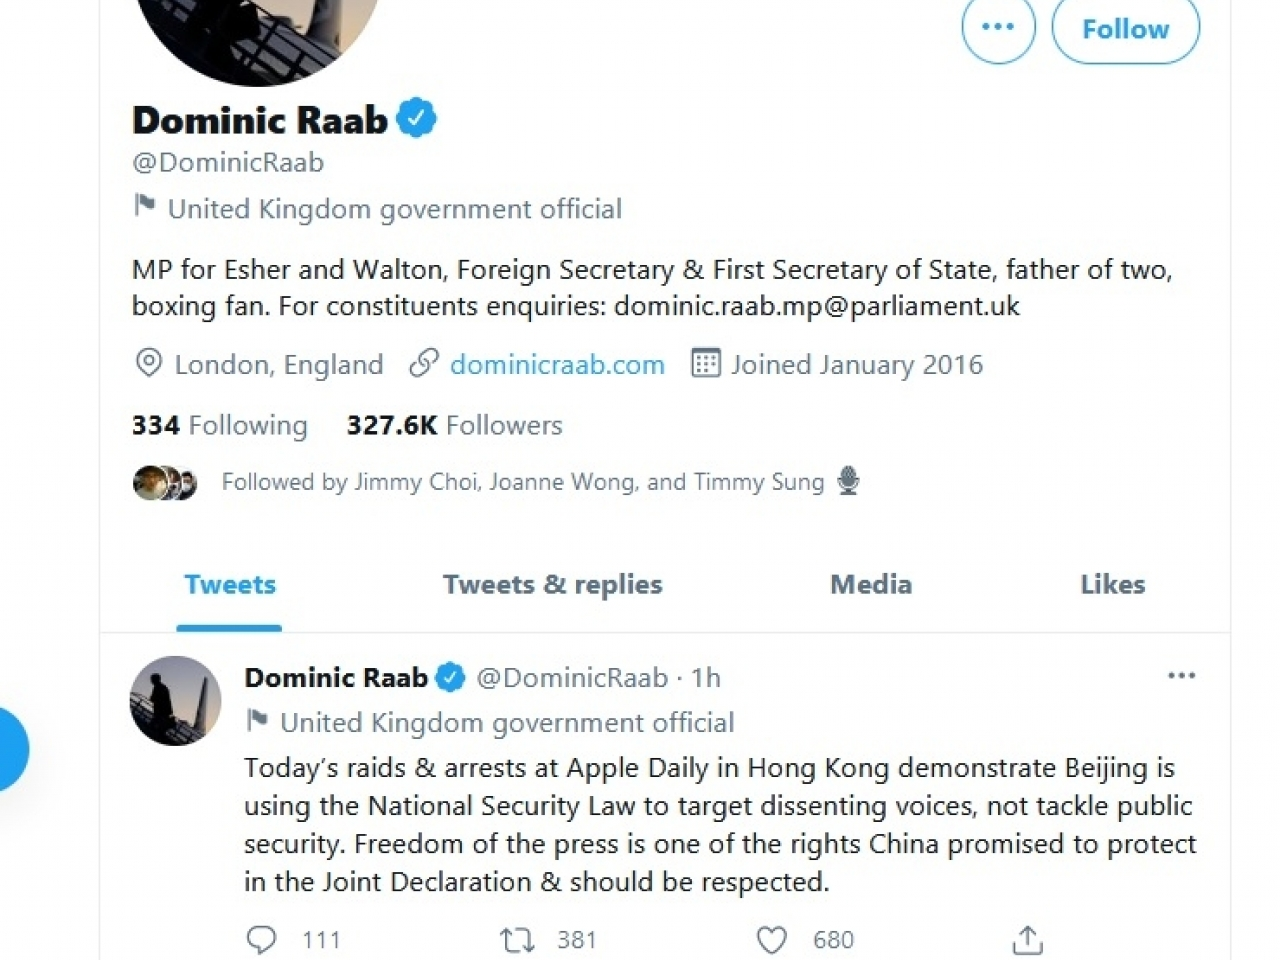 Dominic Raab says on Twitter that China had used the national security law to target dissent rather than deal with public security.